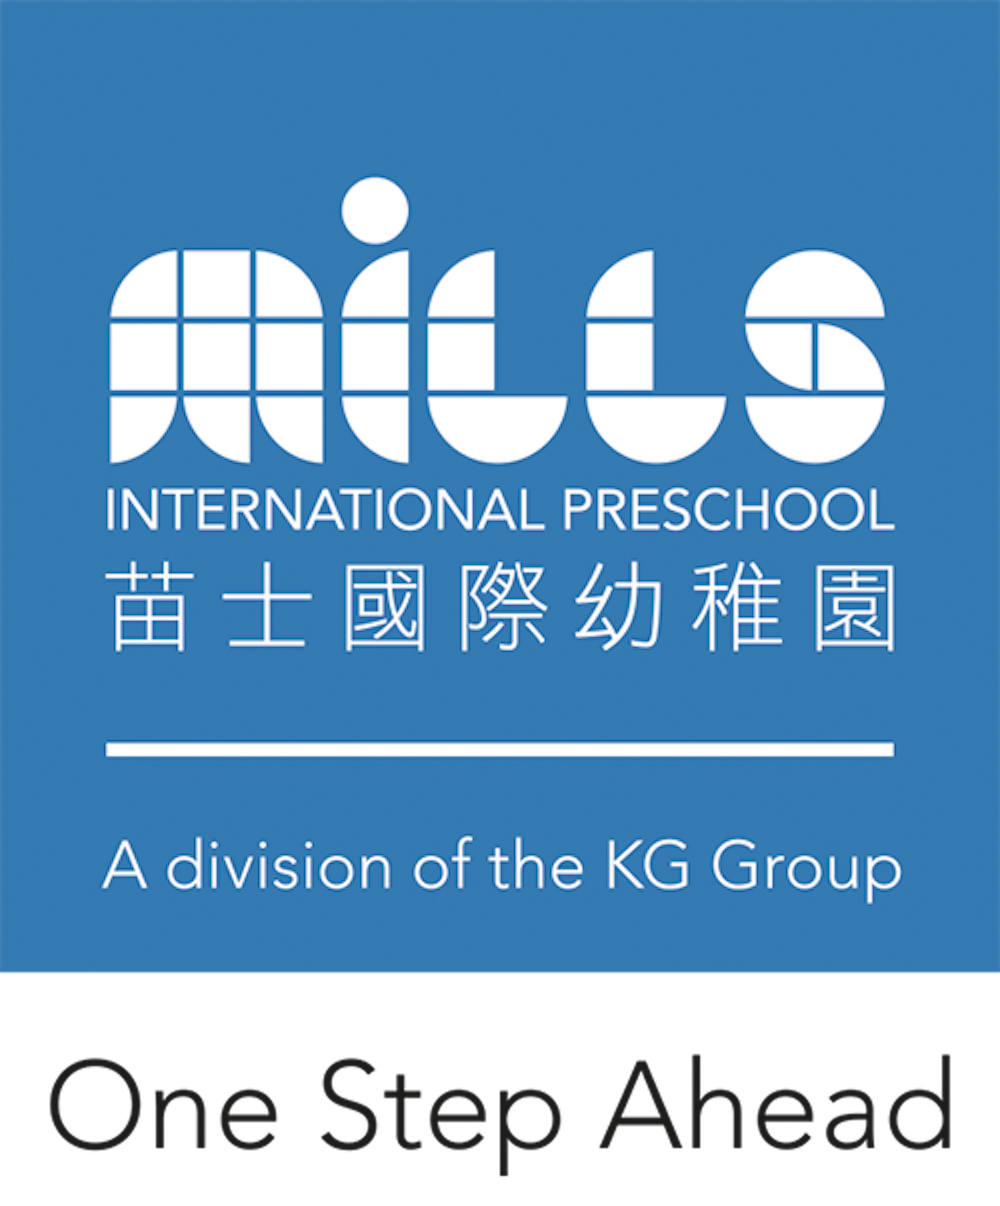 Mills International Preschool